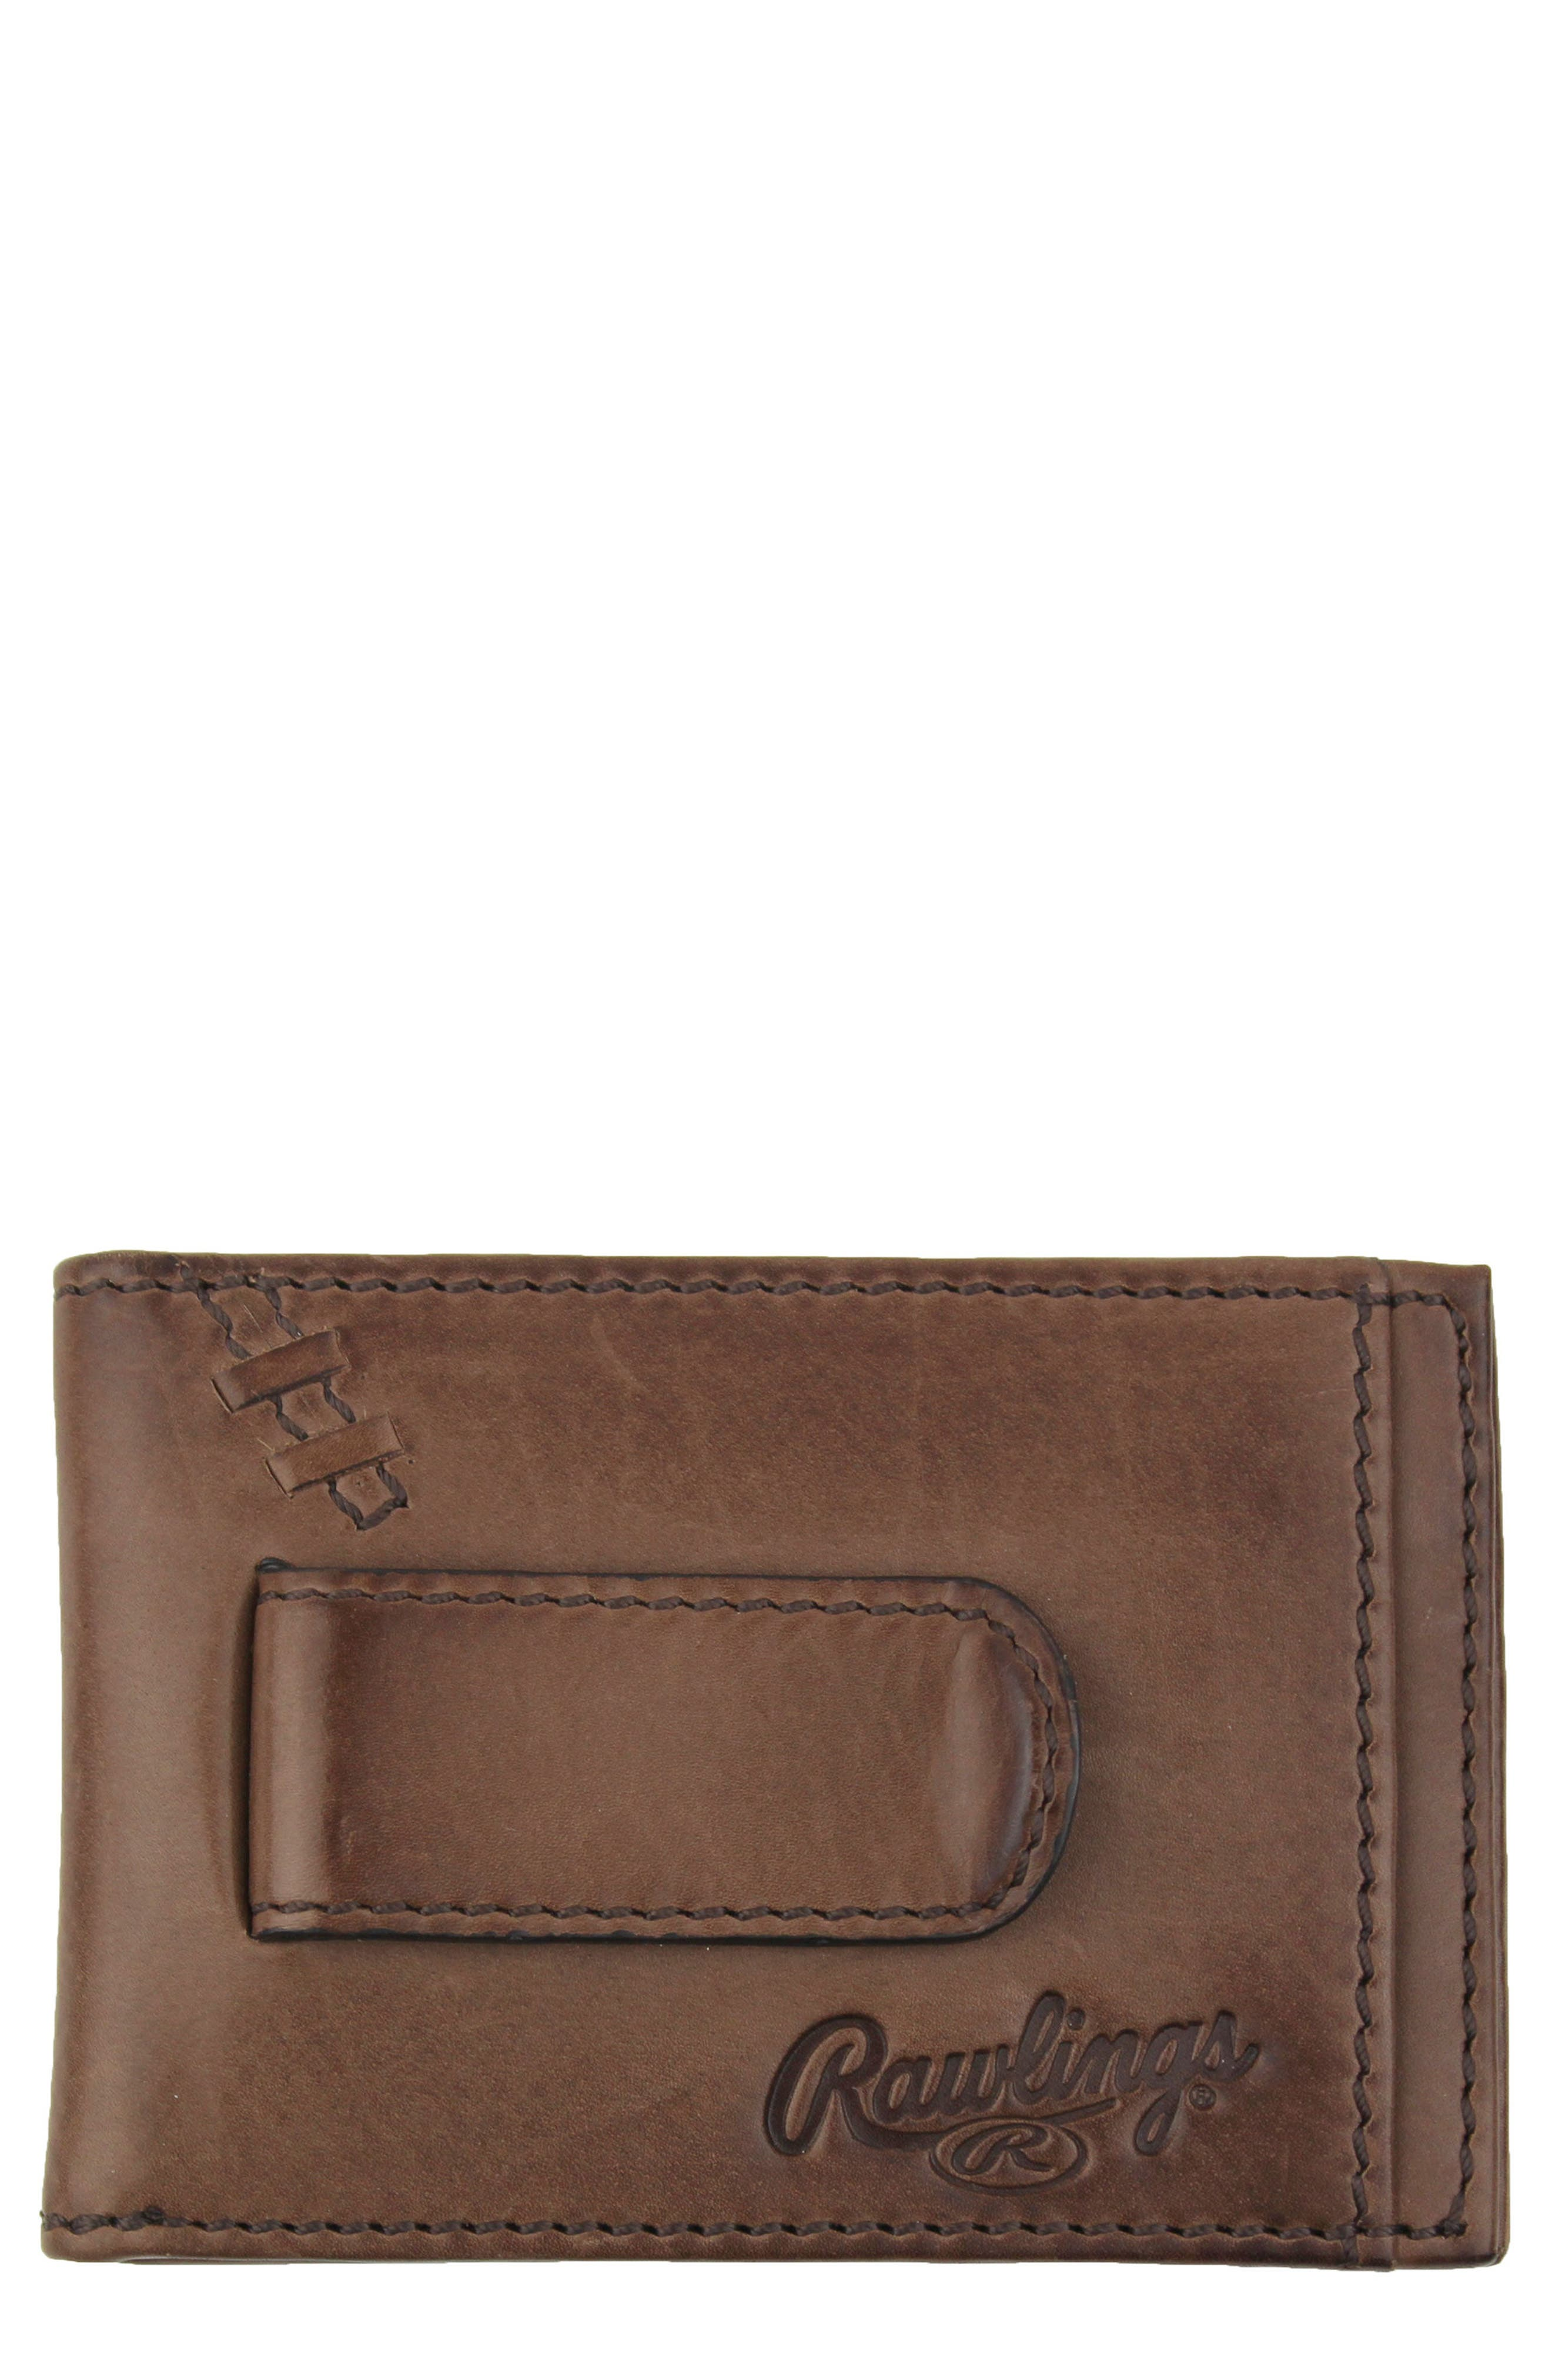 Rawlings Legacy Leather Card Case with Money Clip